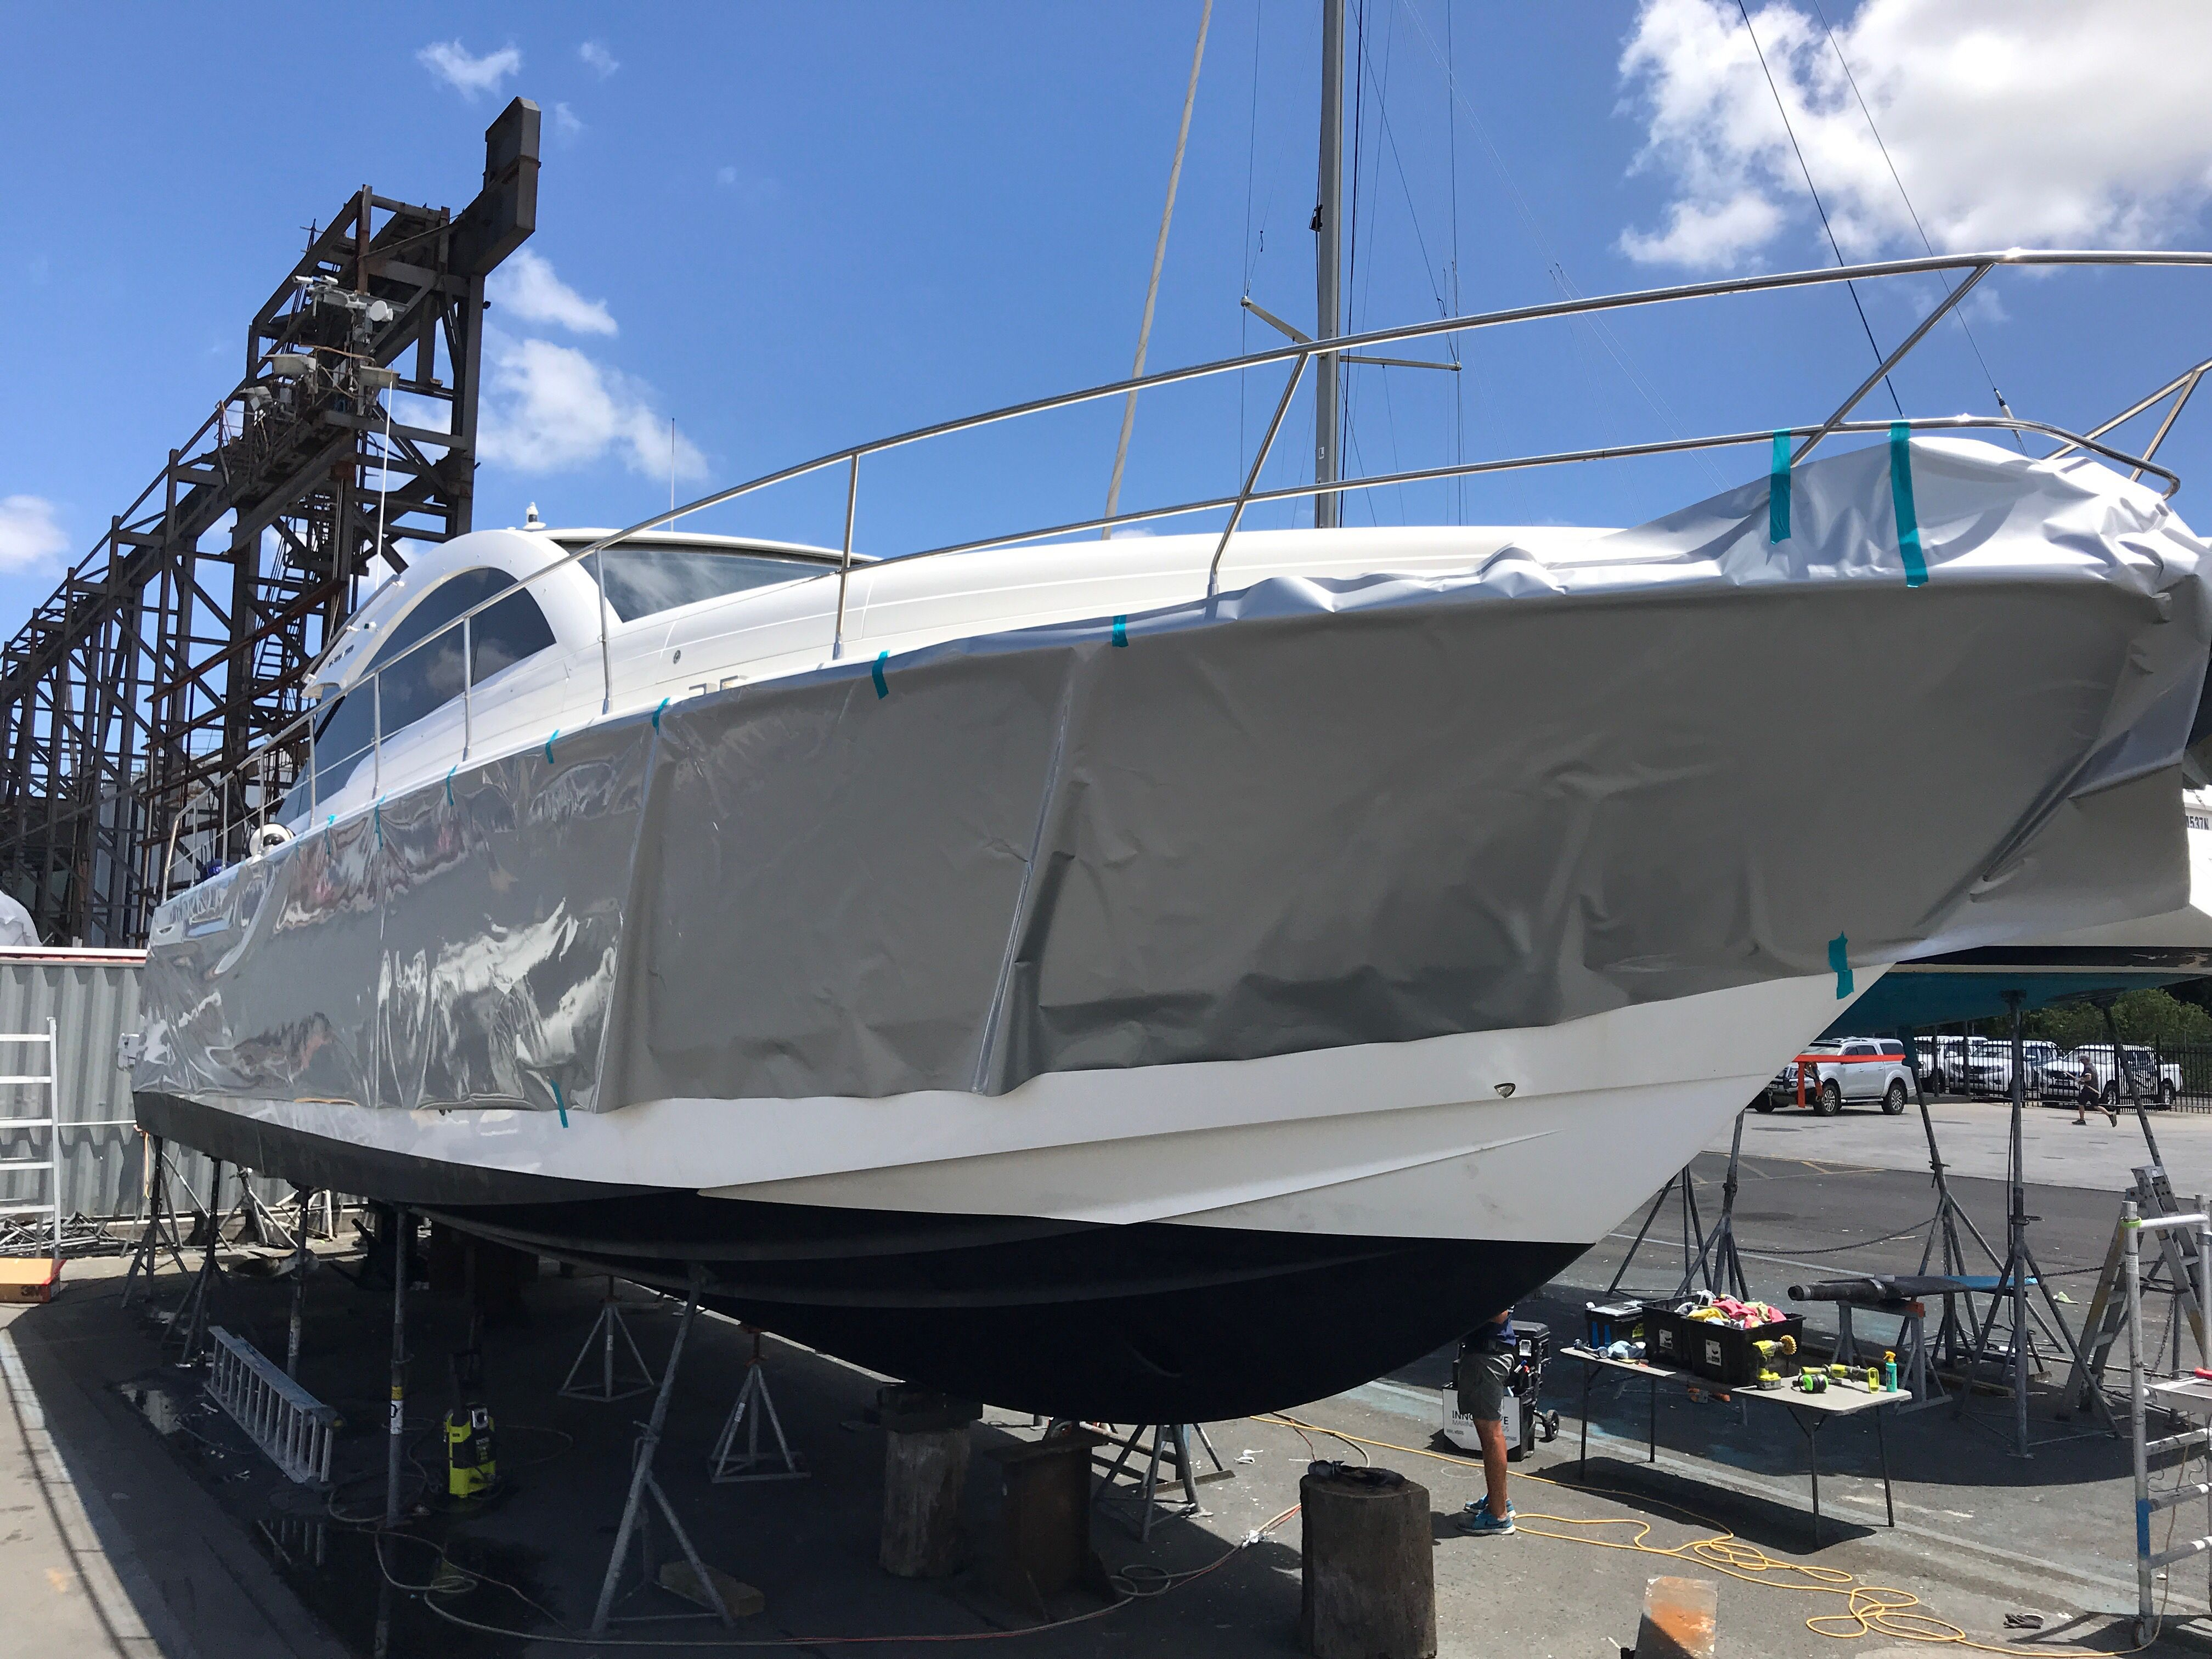 Vinyl Boat Wrapping Of Hull And Cabin Don T Paint Your Boat Wrap It Boat Wraps Deck Designs Backyard Boat